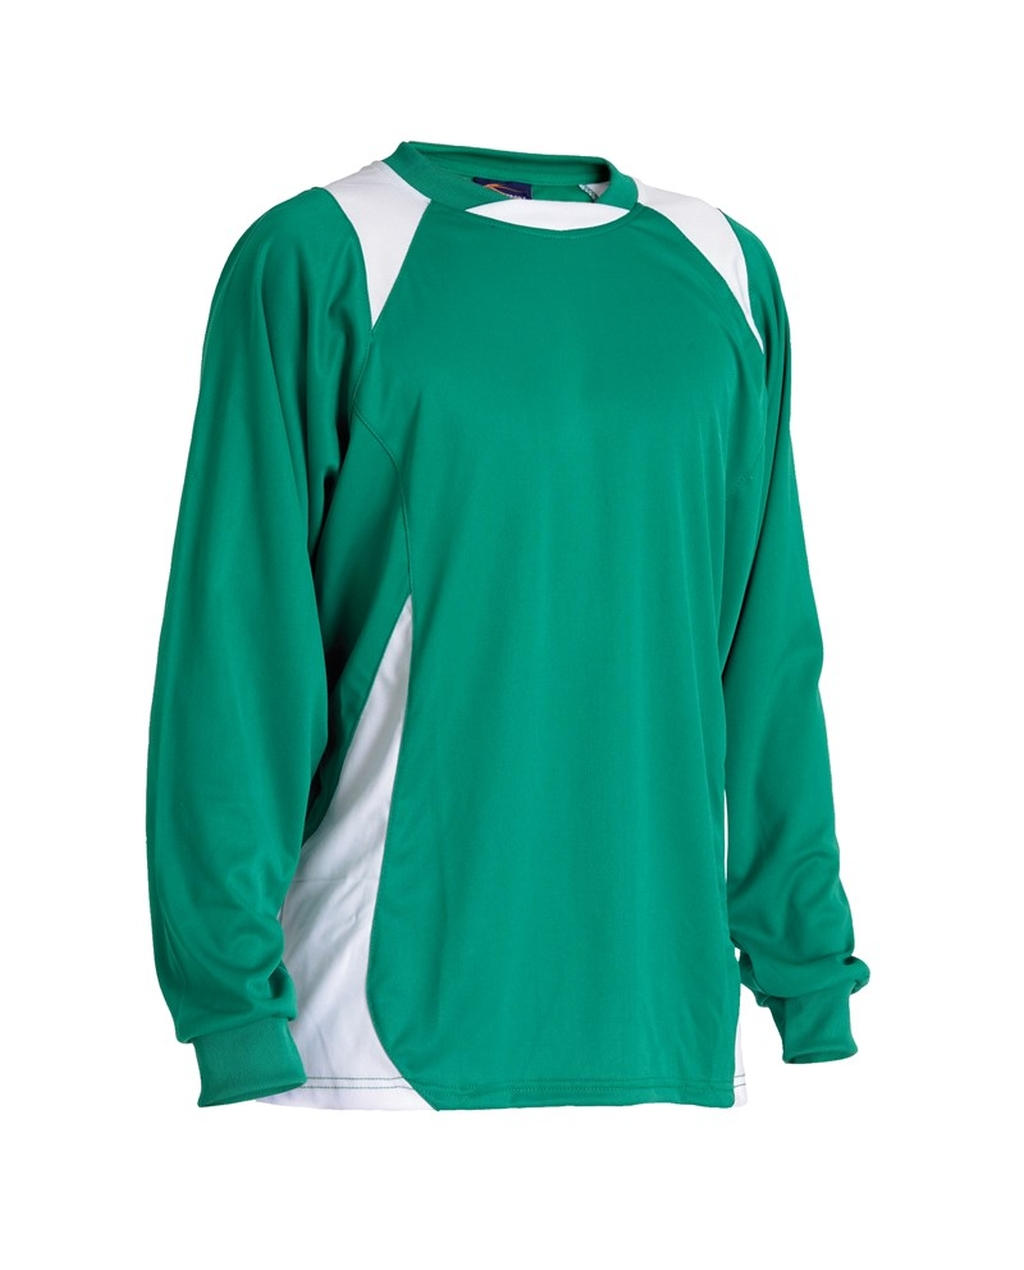 Panelled Soccer Shirt - 26/28